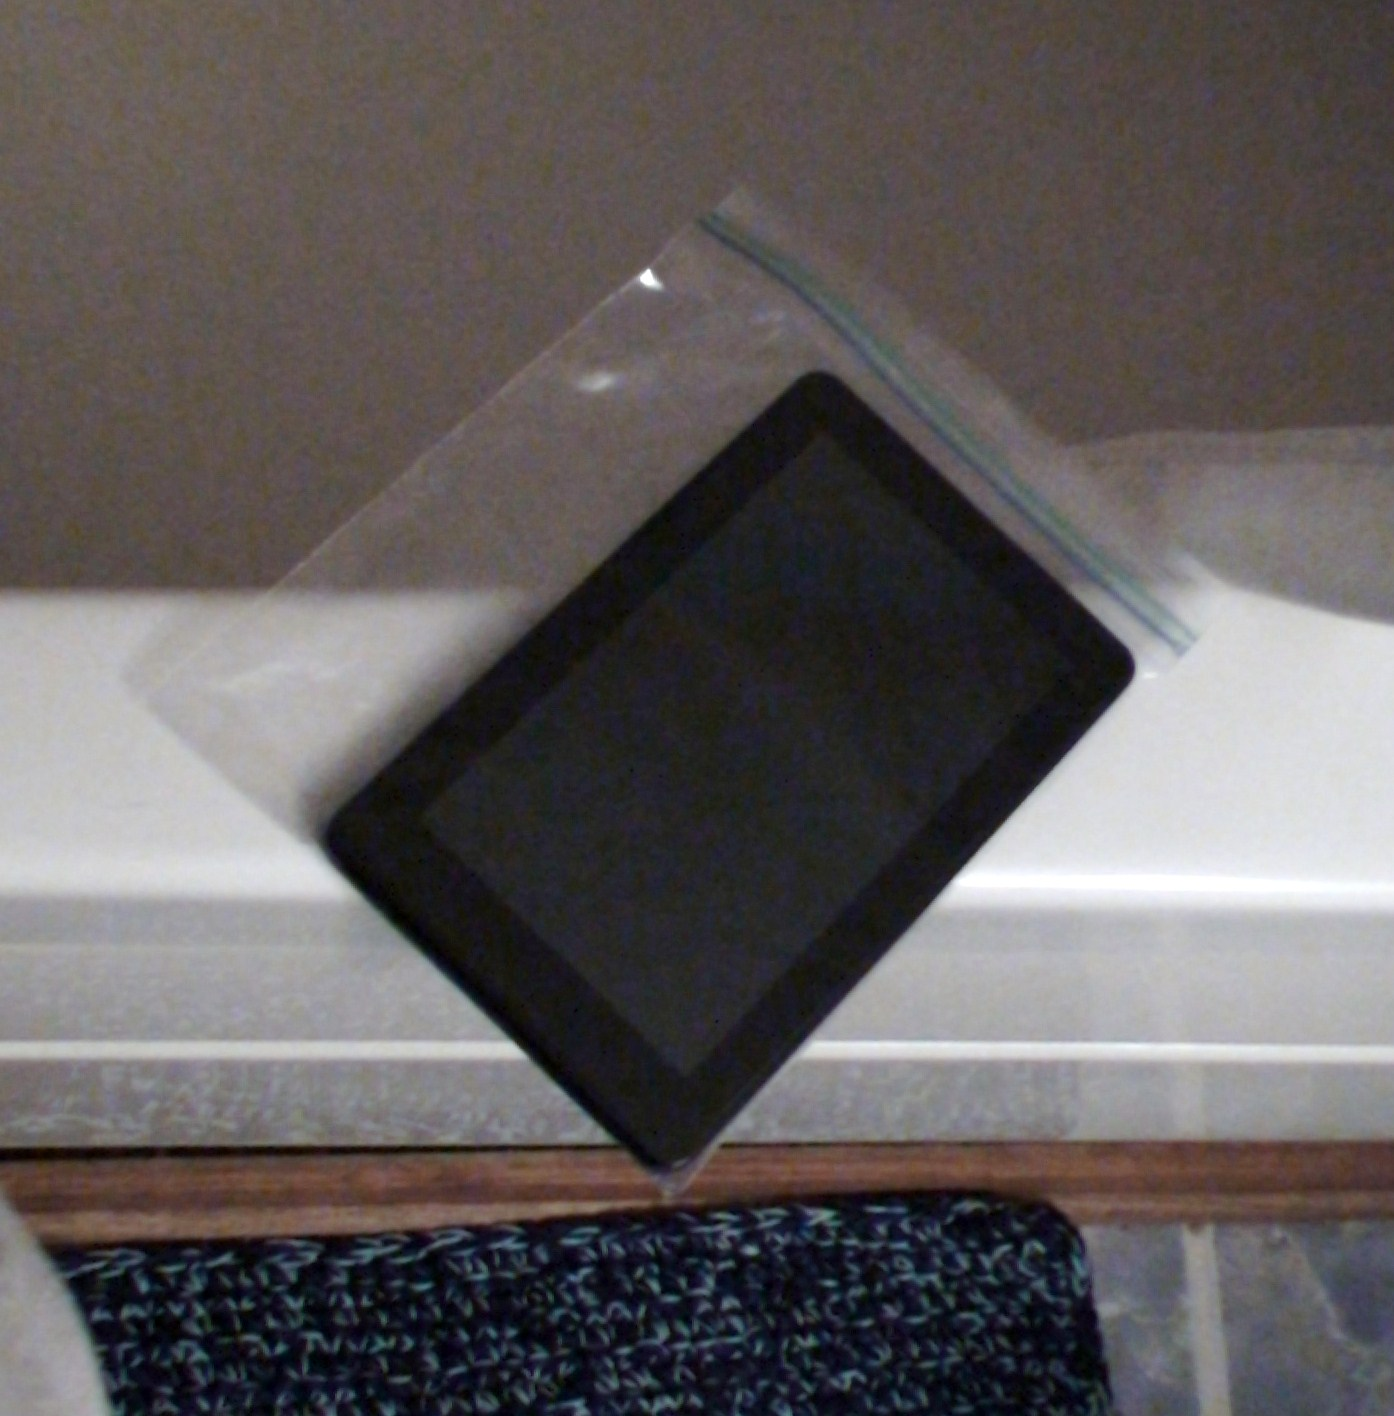 Waterproofing your Kindle (ipad, Tablet, Nook...)